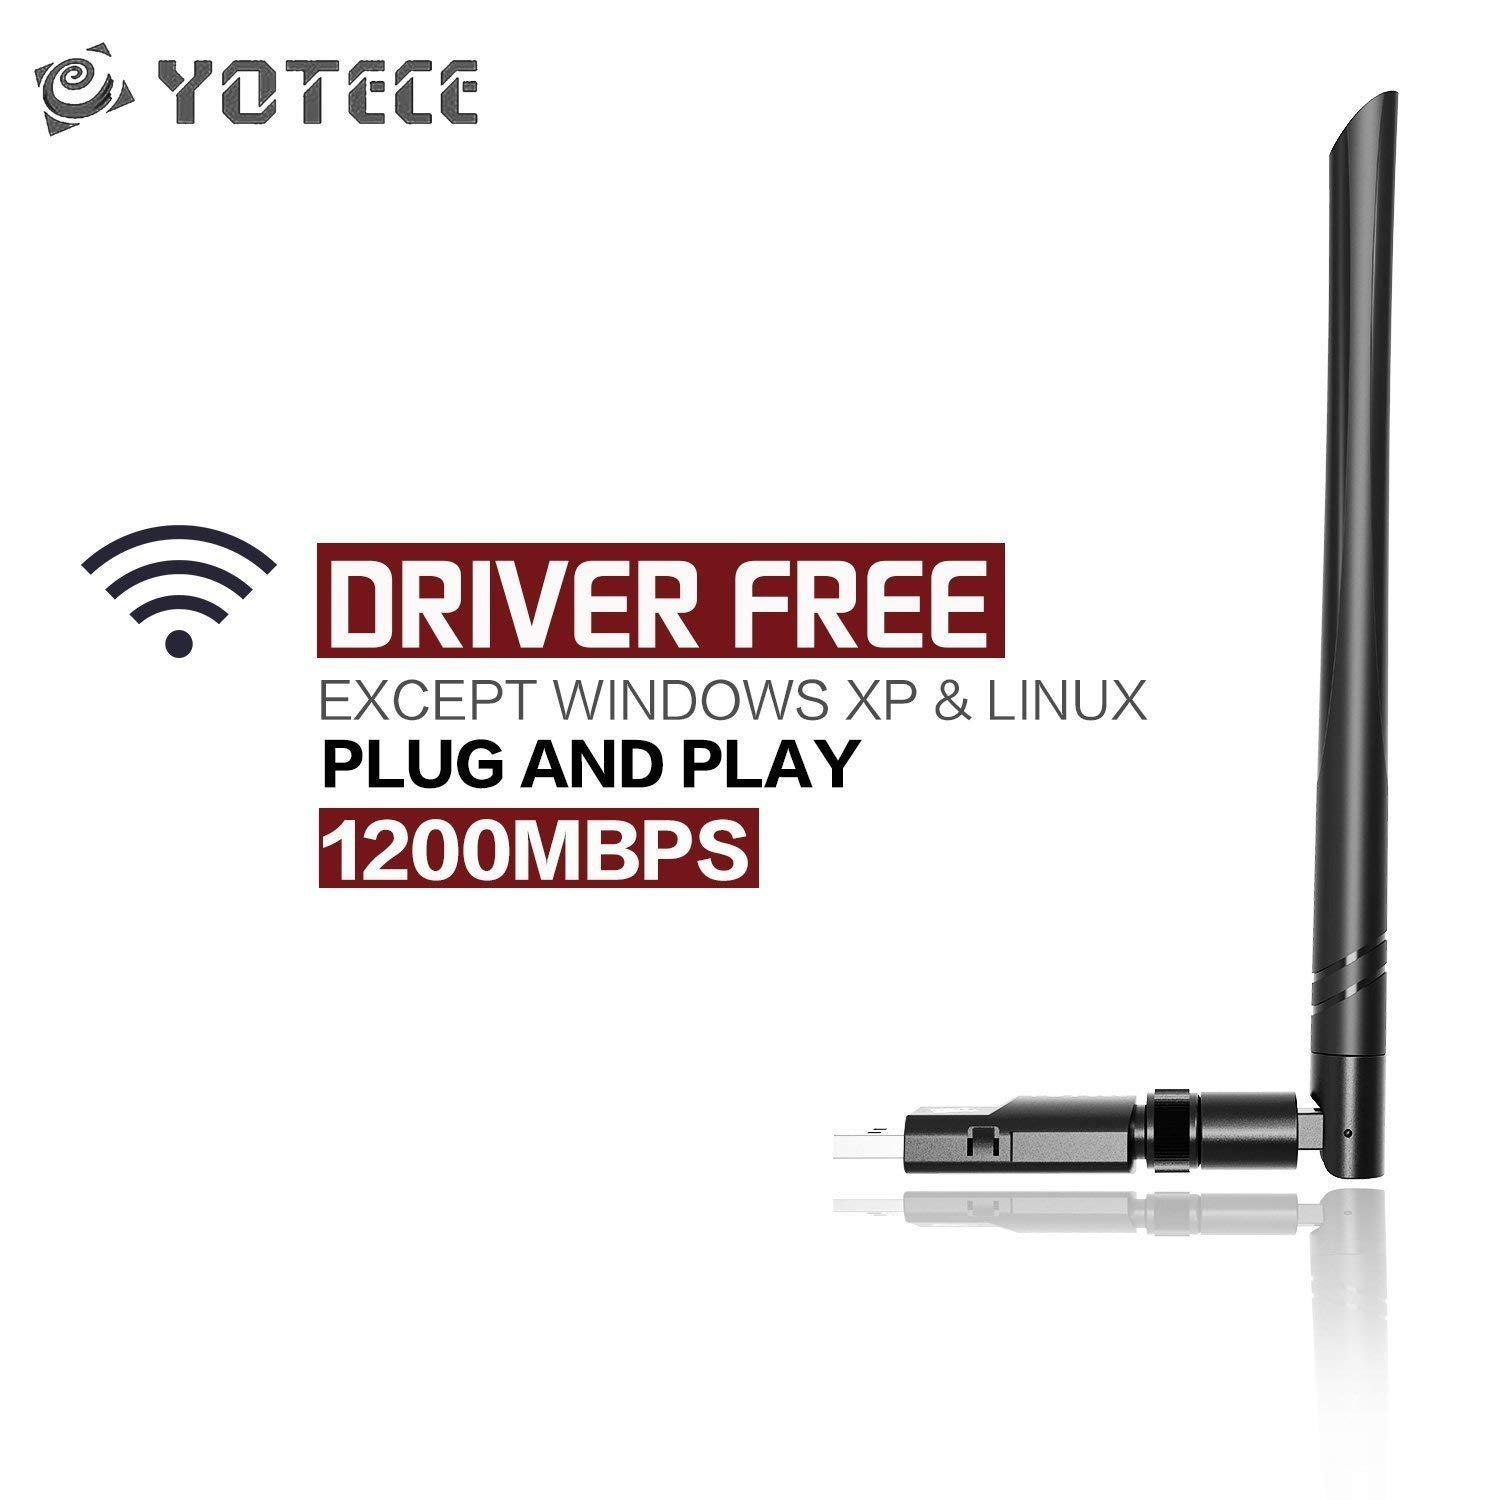 YOTECE USB WiFi Adapter 1200Mbps, Dual Band 2.4G/5GHz High Gain Dual 5dBi Antennas Network WiFi USB 3.0 Desktop Laptop Windows 10/8/7/XP, Mac OS X, Ubuntu Linux by YOTECE